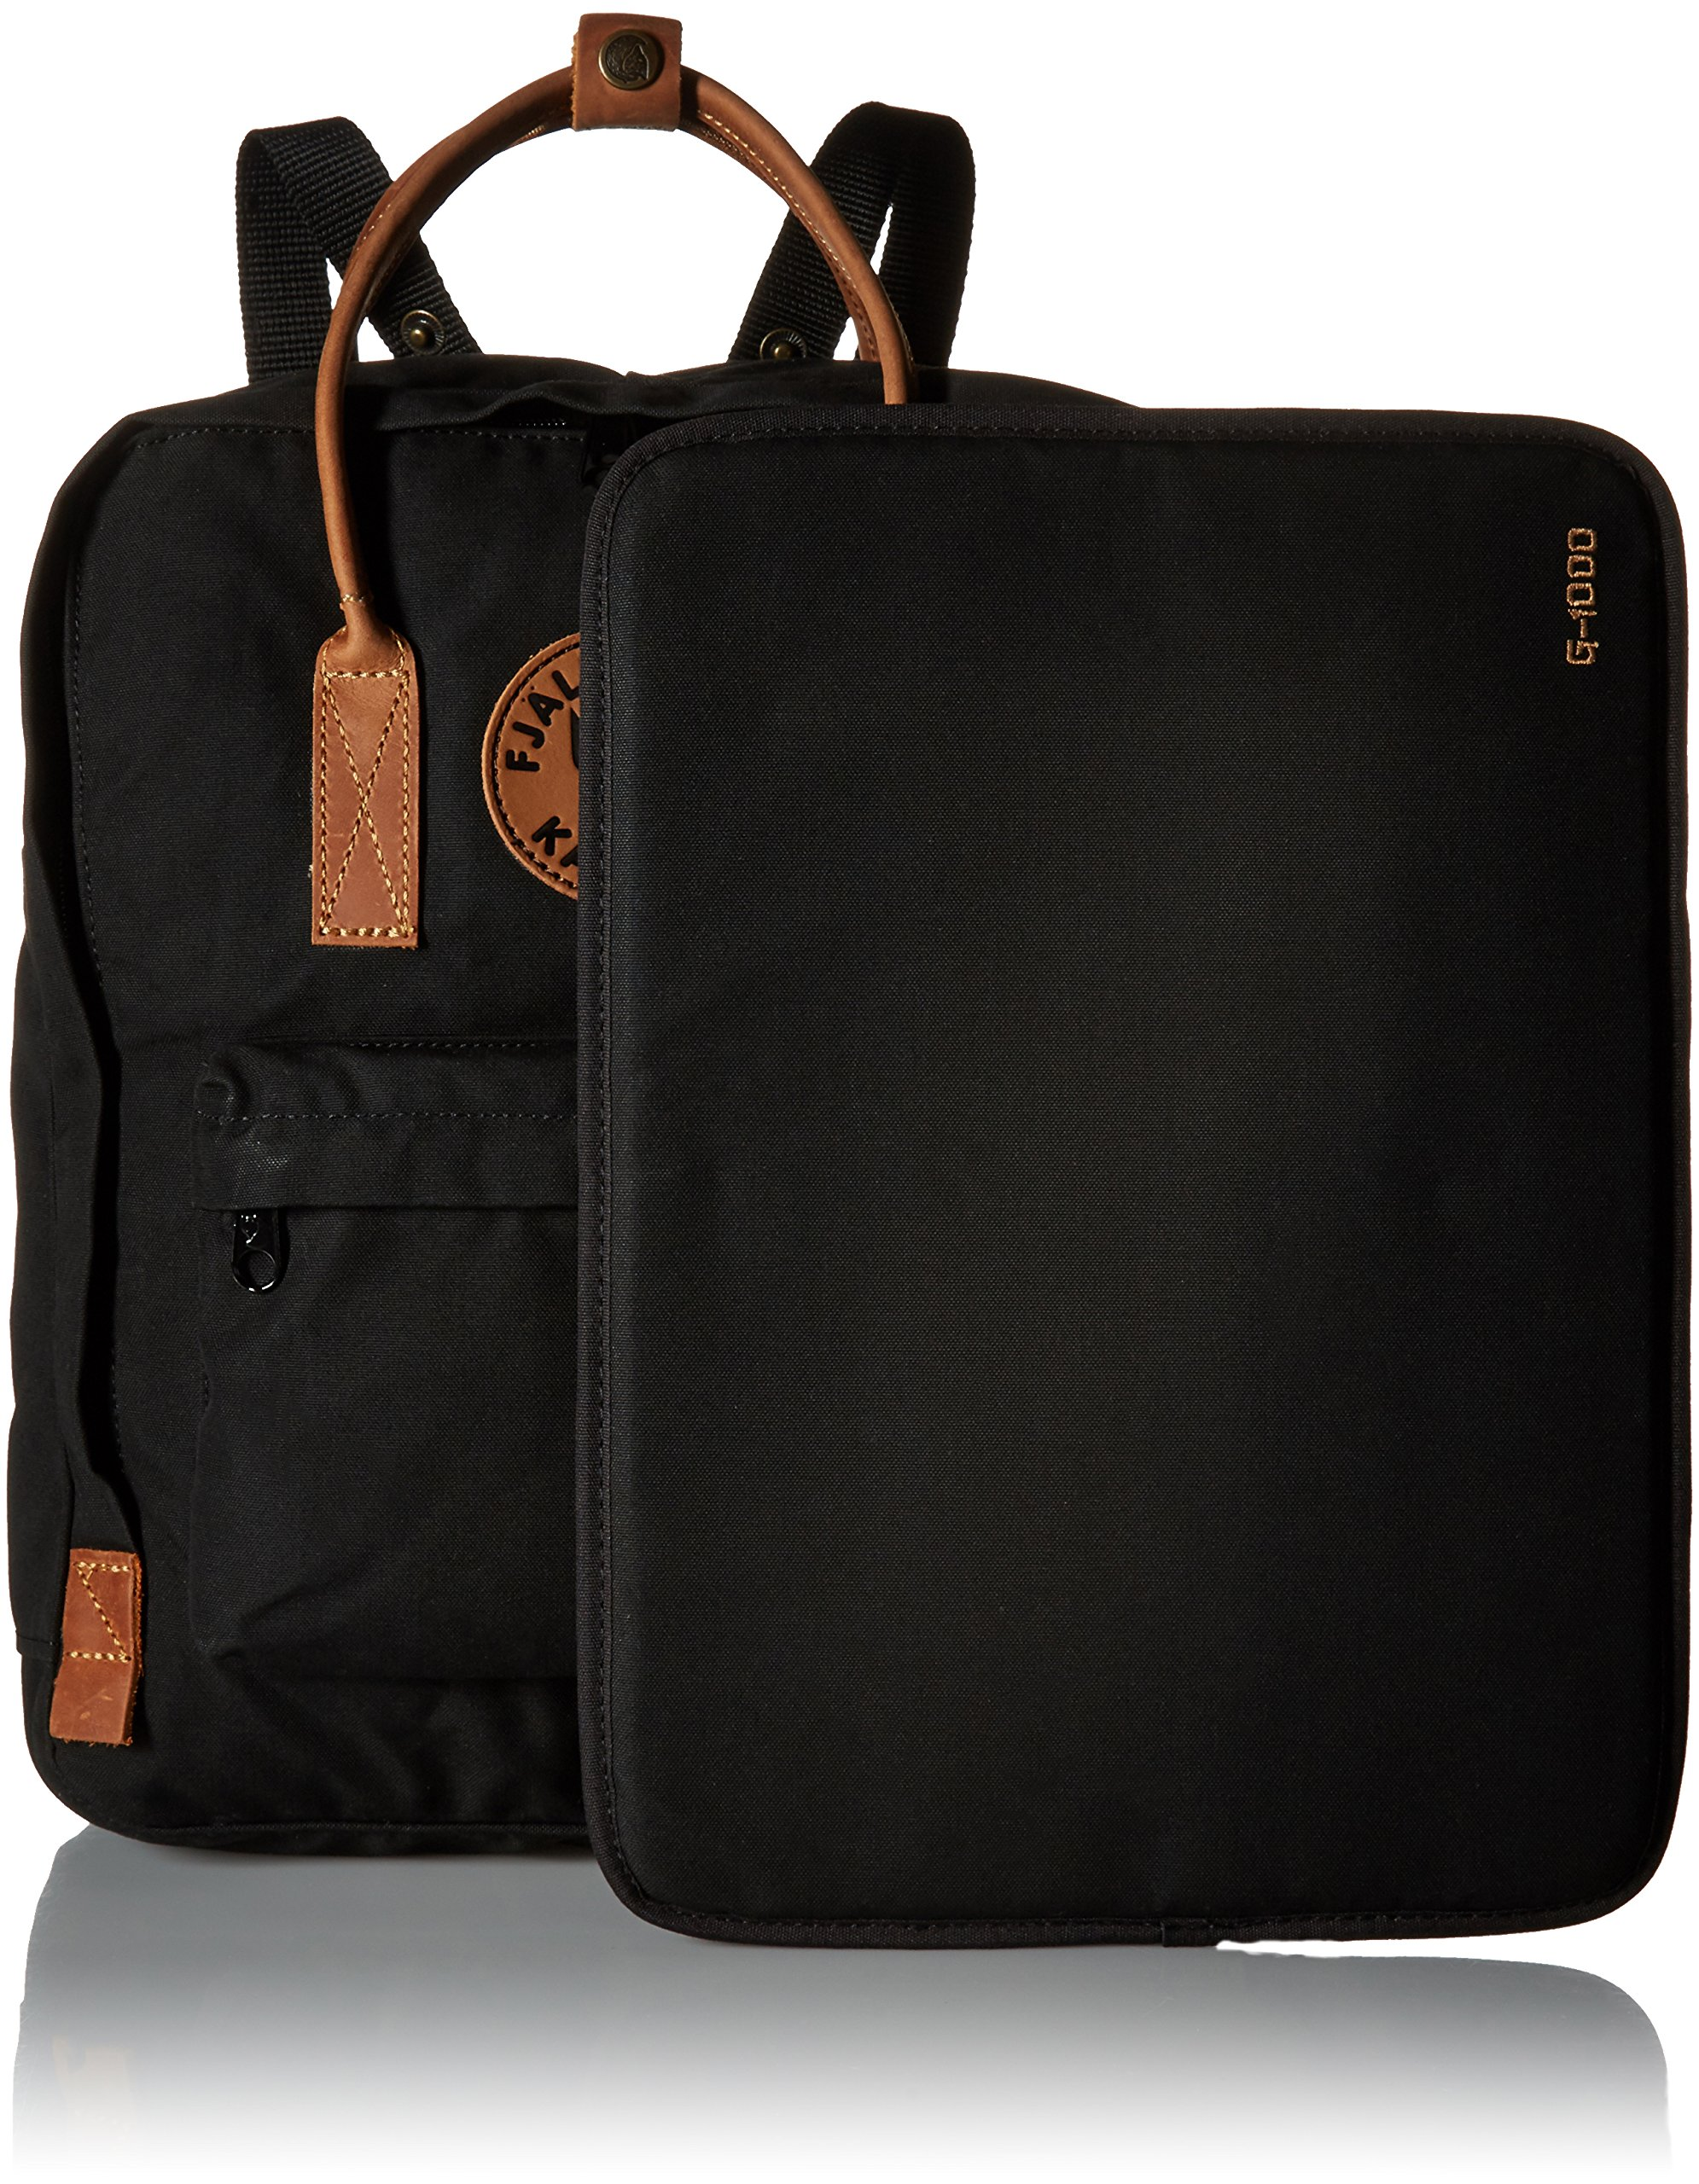 Fjallraven - Kanken No. 2, Heritage and Responsibility Since 1960, Black by Fjällräven (Image #4)